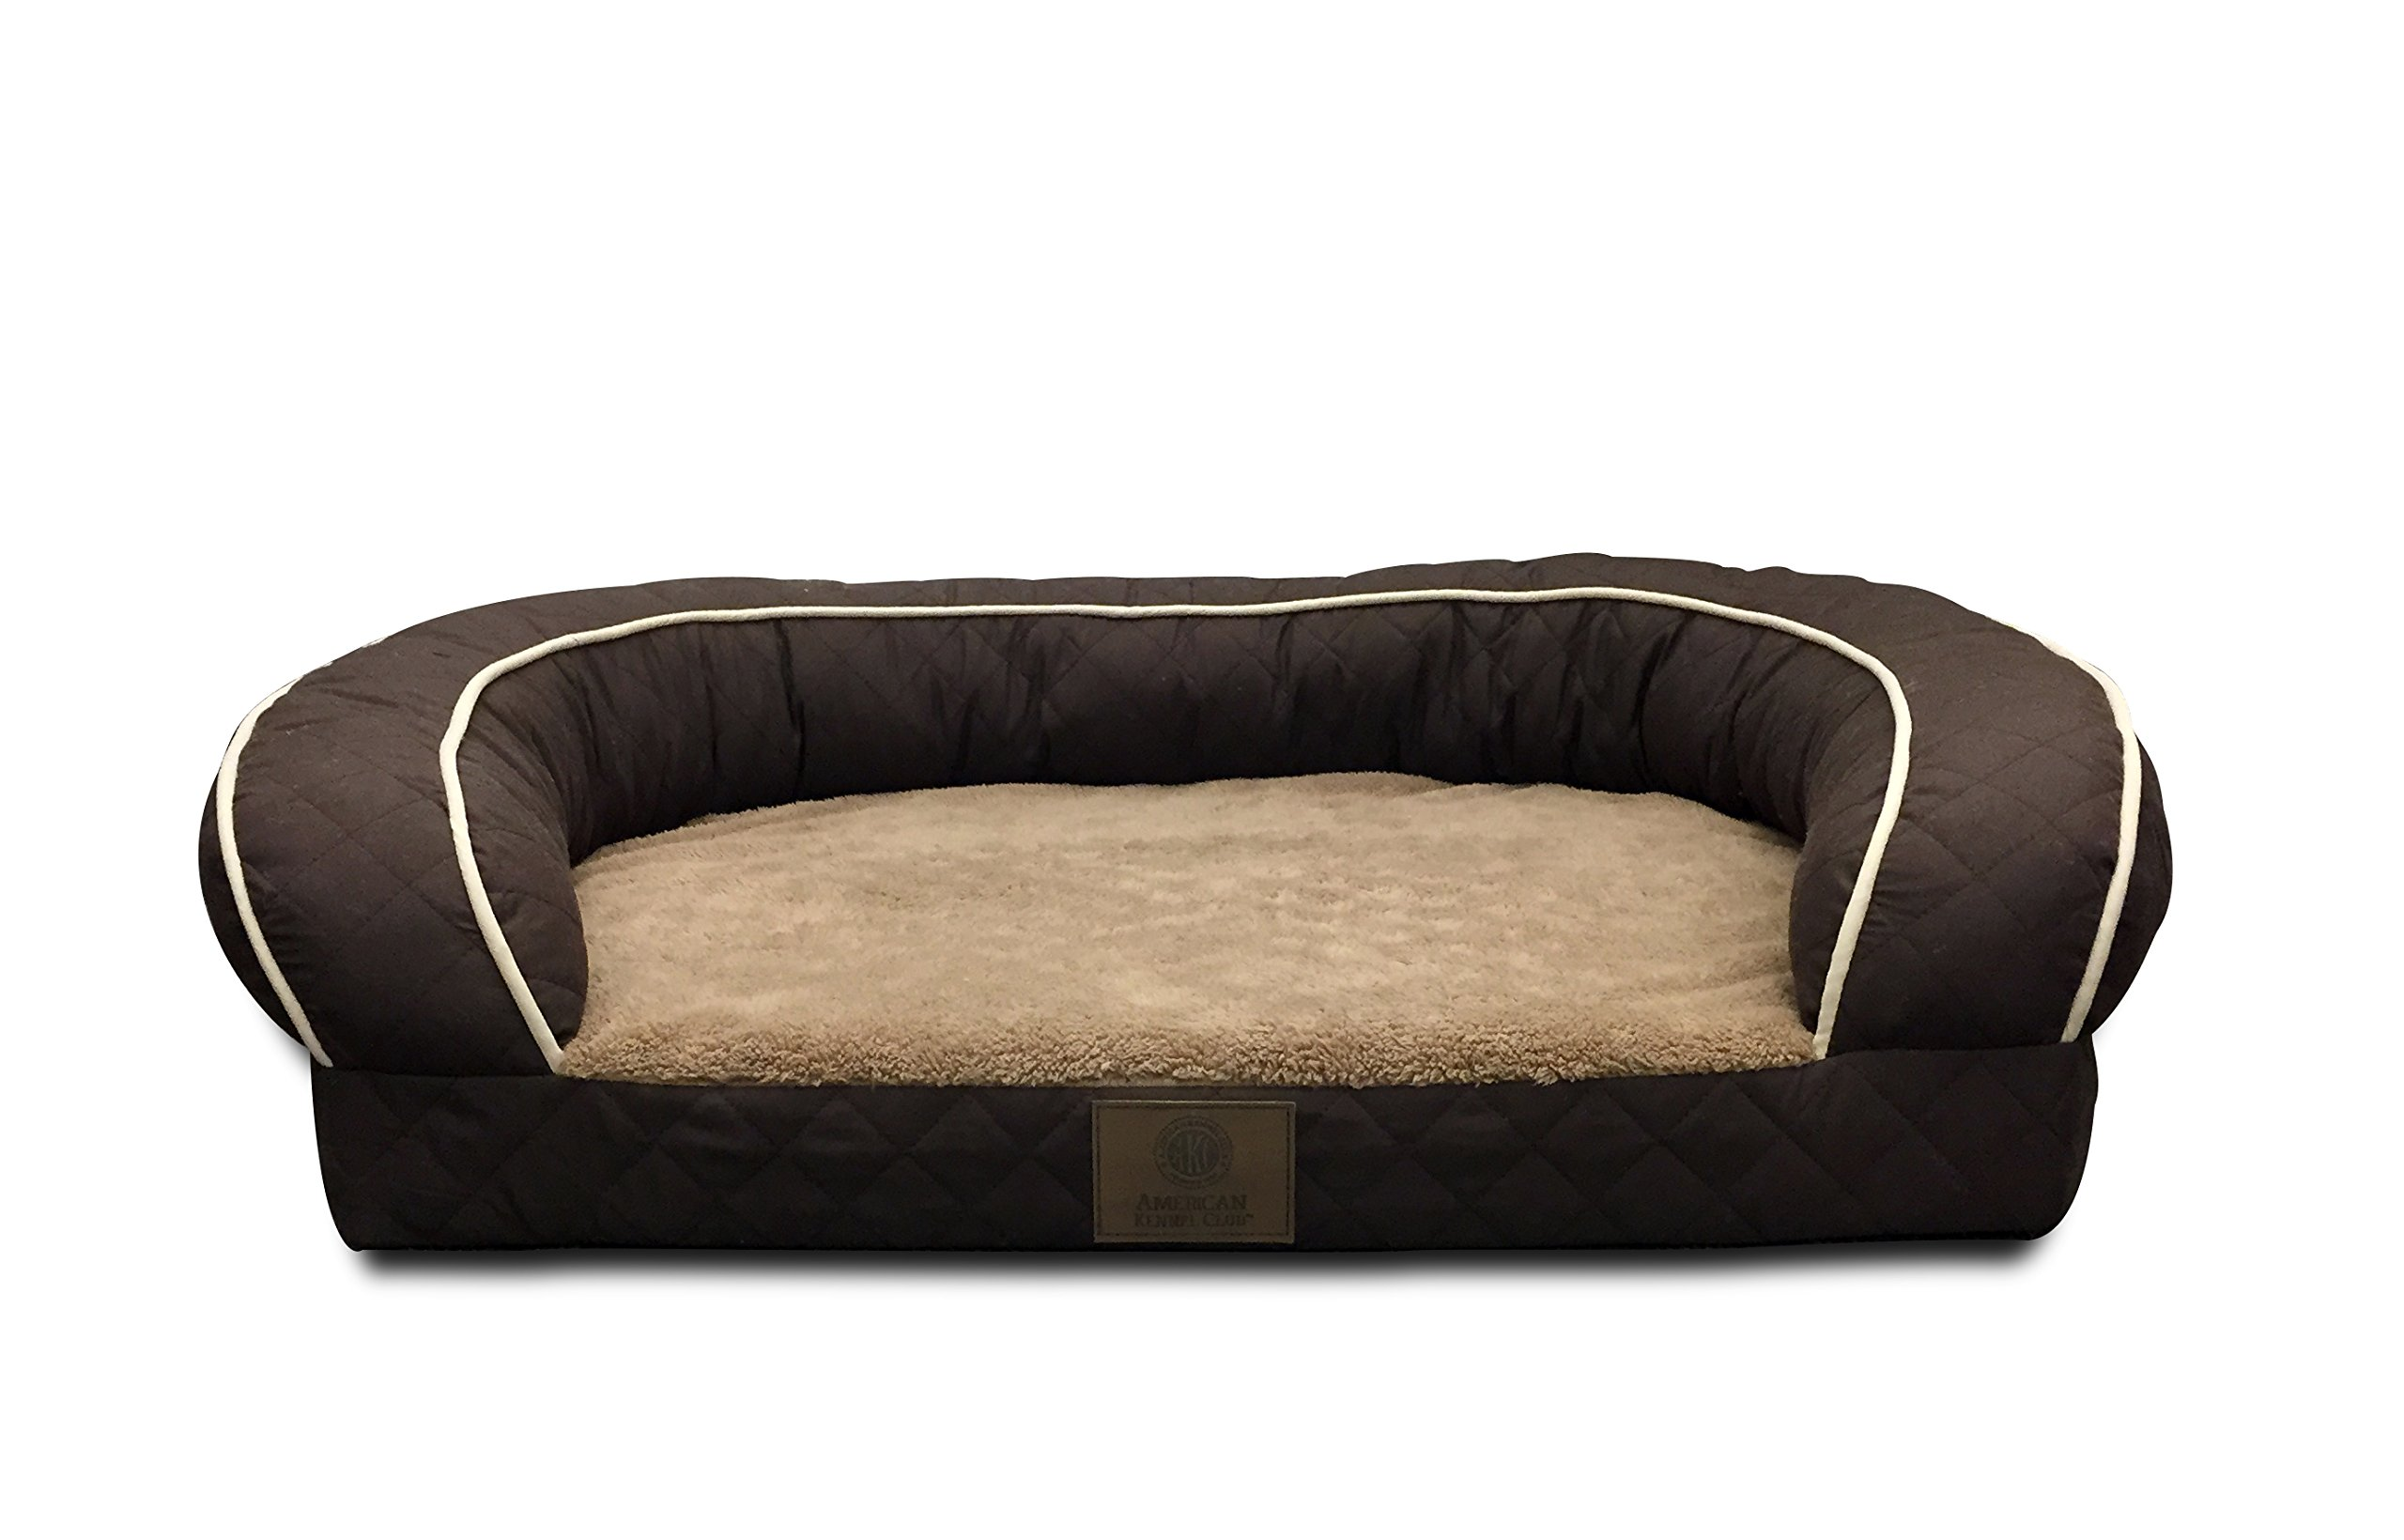 AKC Sweet Dreams Jumbo Quilted Orthopedic Pet Sofa Couch Bed with Bolster Sides, Machine Washable, Ideal For Medium Size Breeds by American Kennel Club